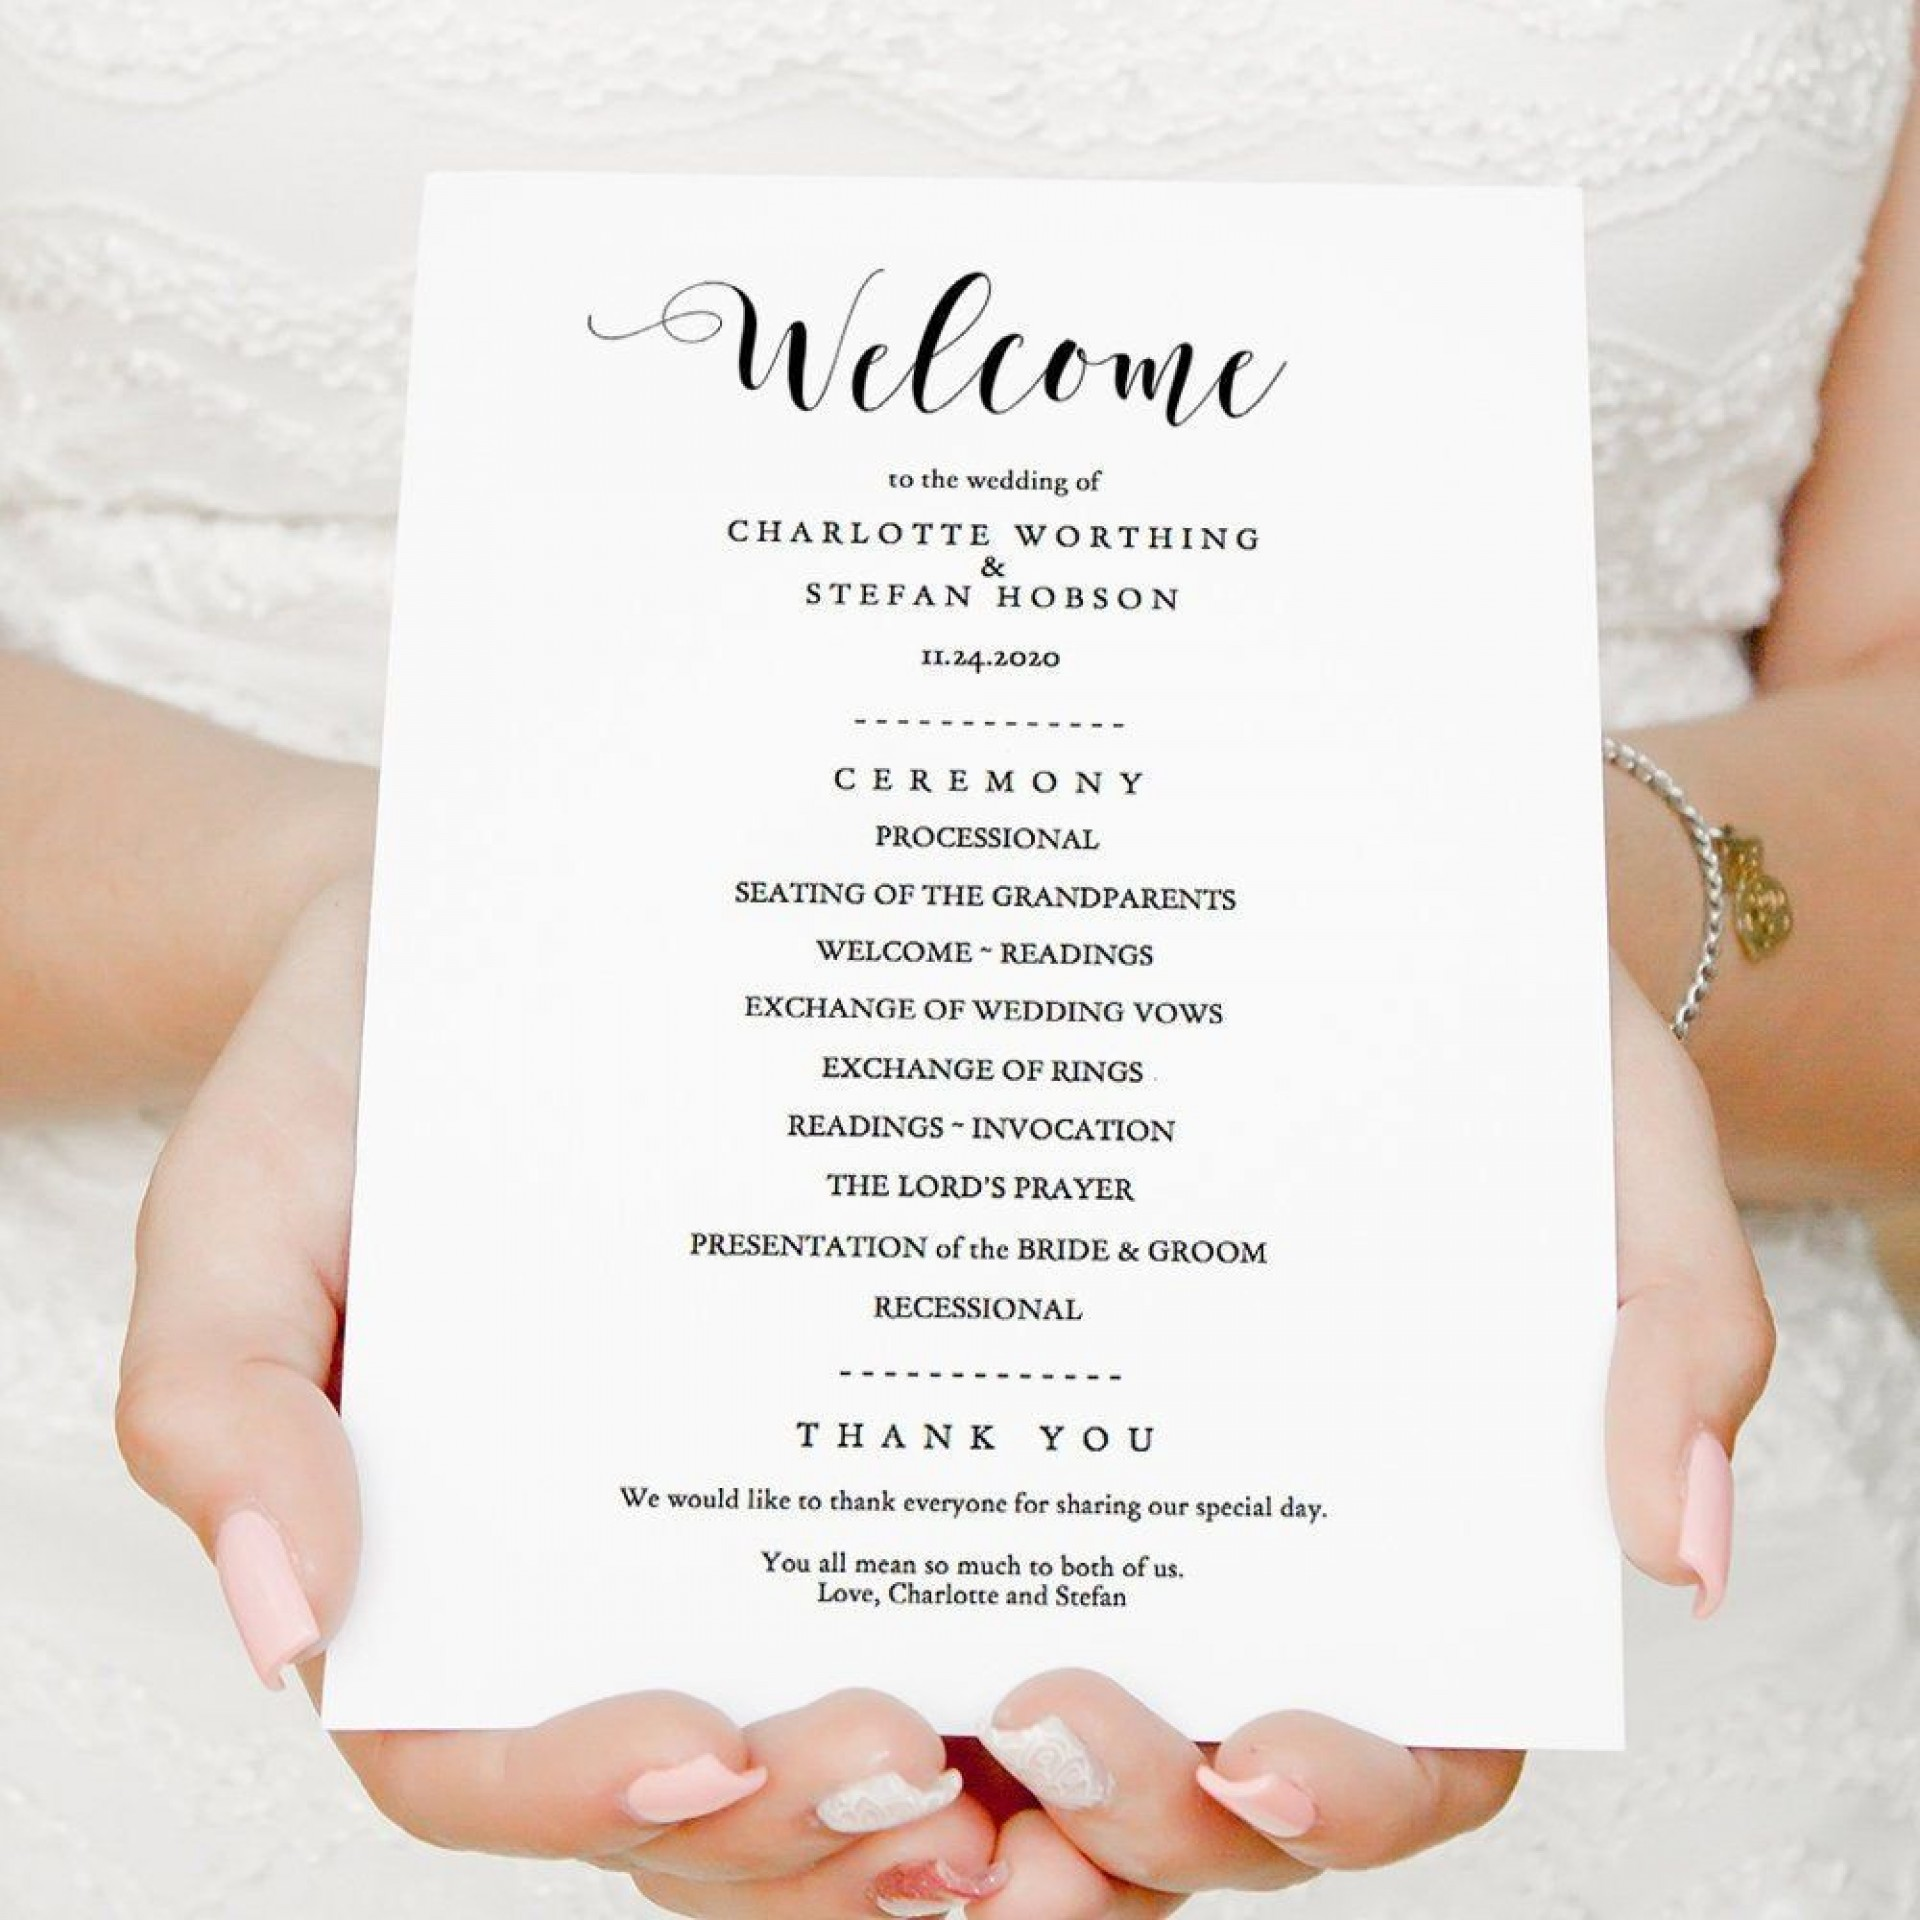 006 Wonderful Wedding Order Of Service Template Free Highest Clarity  Front Cover Download Church1920